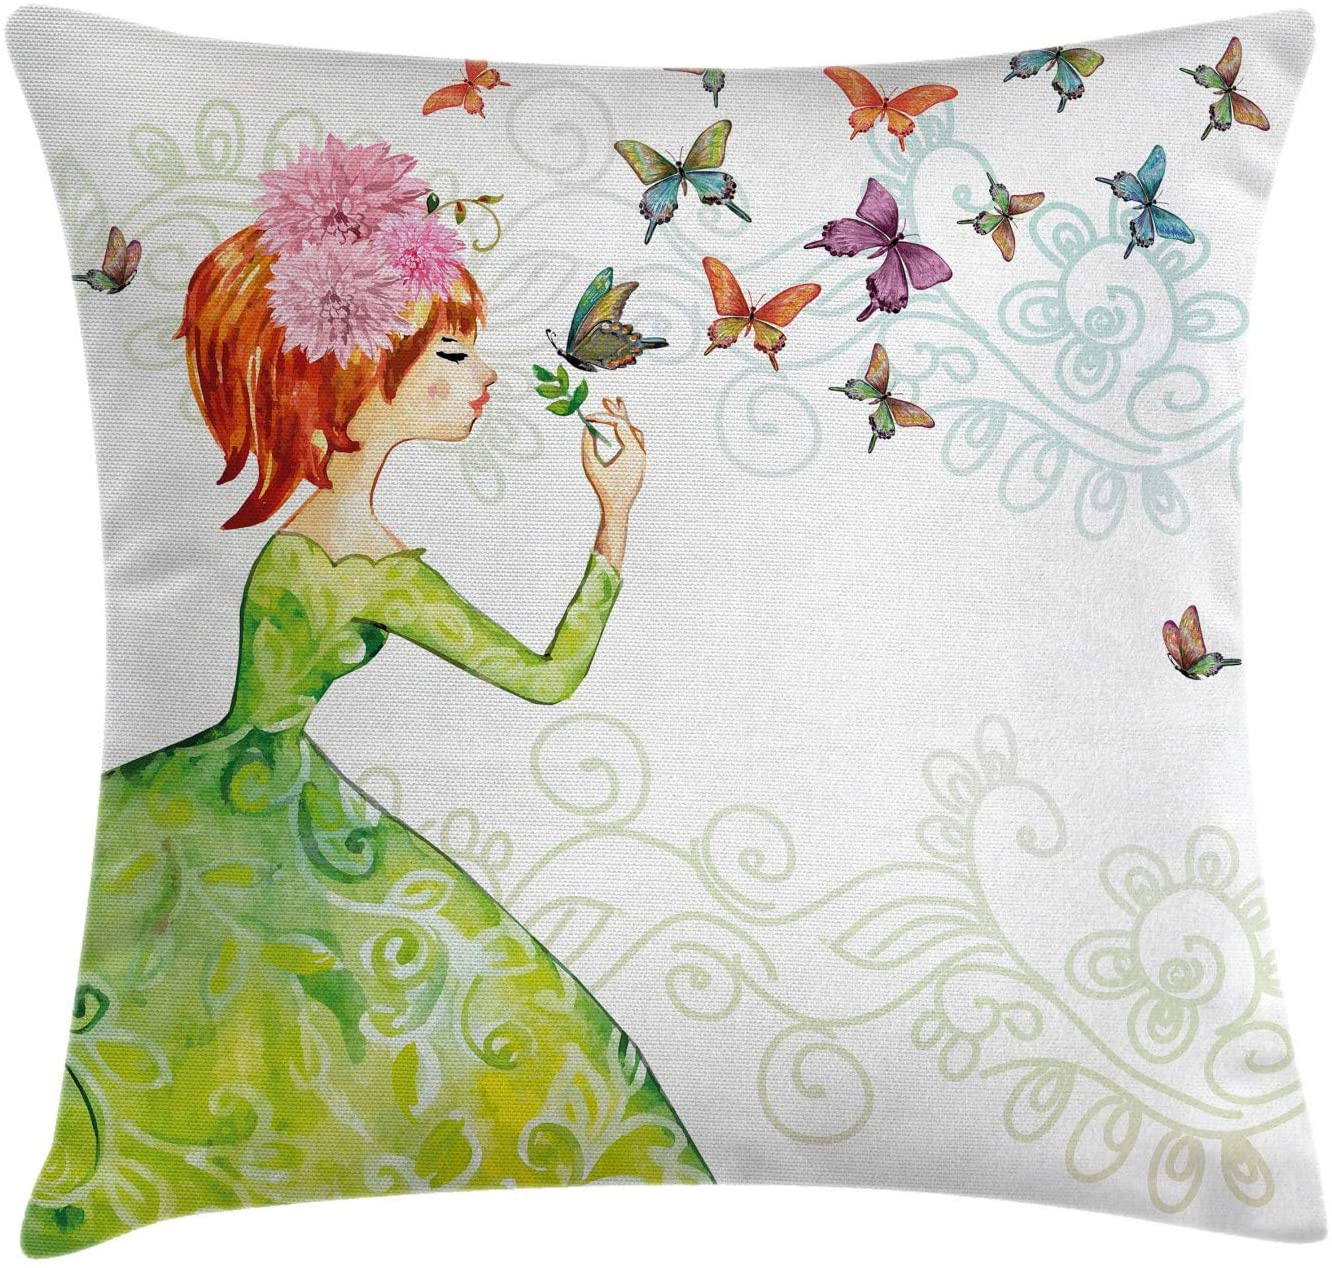 Ambesonne Butterfly Throw Pillow Cushion Cover, Floral Lady in Green Dress with Leaf Ornaments Flower Pastel Butterfly, Decorative Square Accent Pillow Case, 18 X 18, Pink Orange